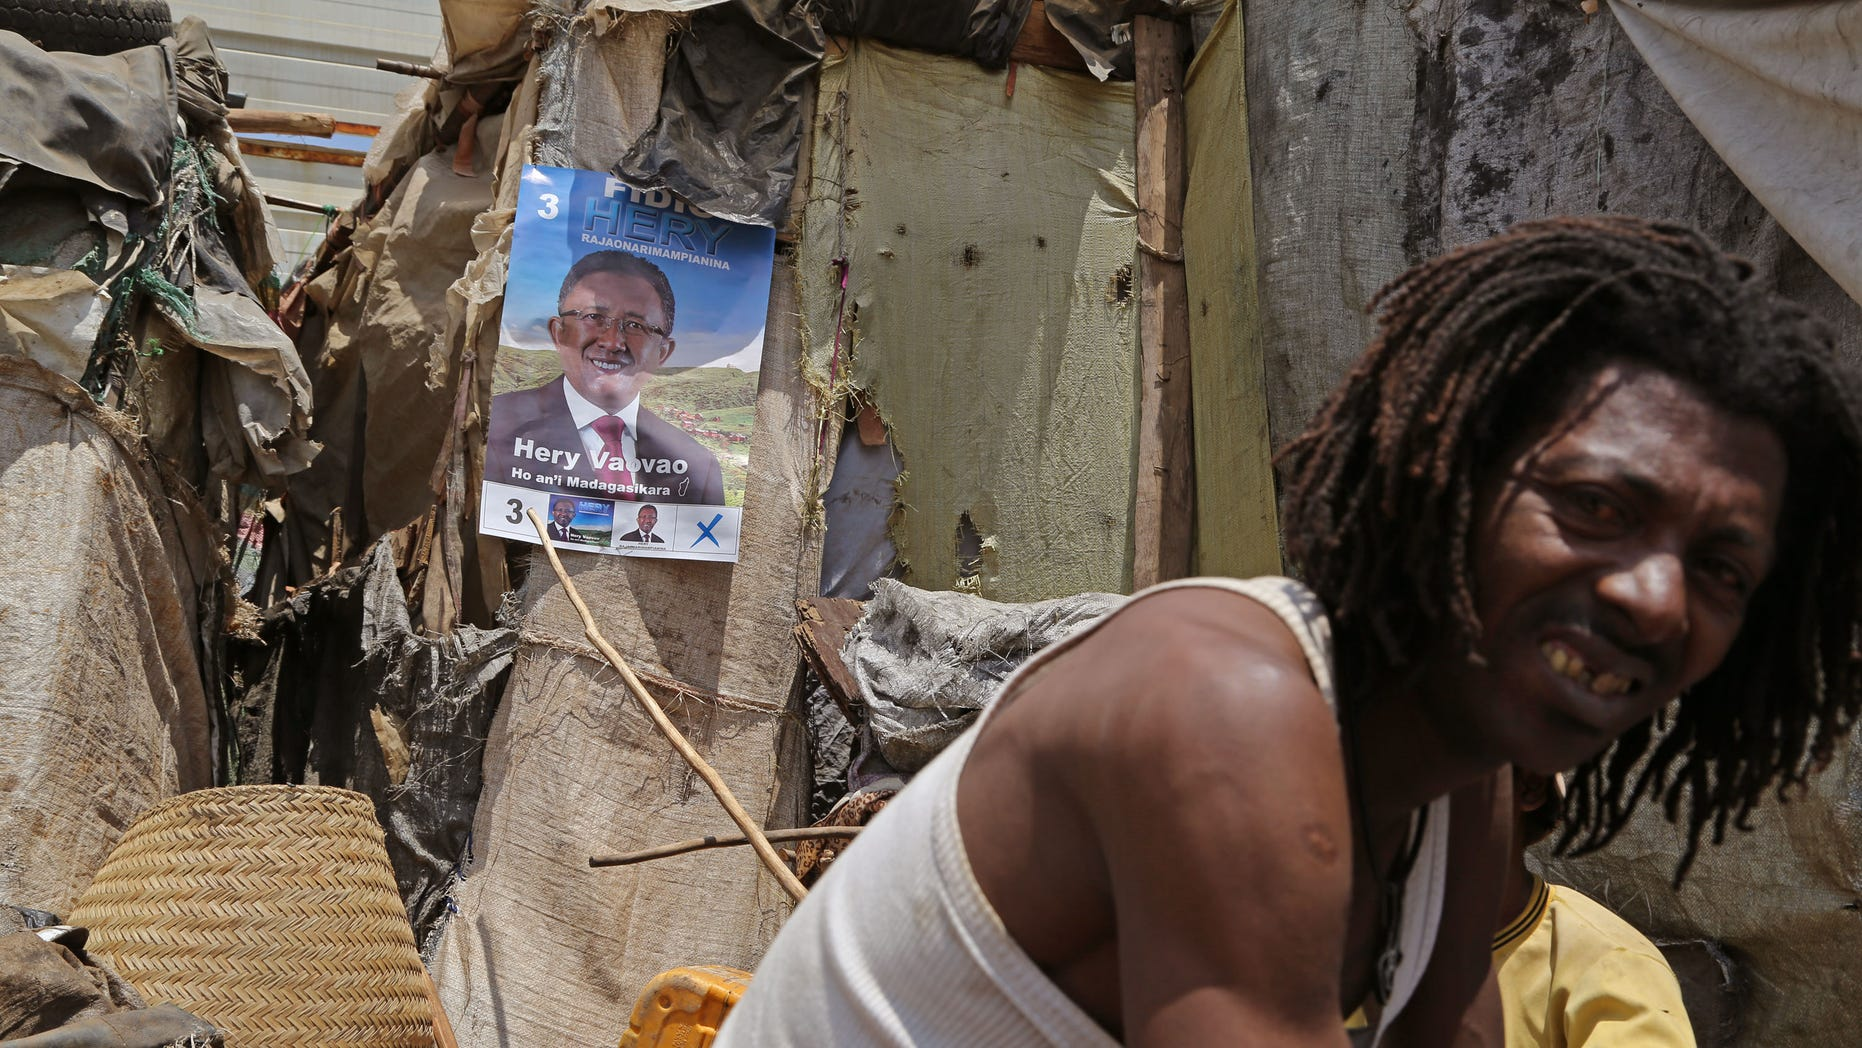 A supporter of Presidential candidate Hery Rajaonarimampianina, displays his poster, outside his home in the city of Antananarivo, Madagascar, Thursday, Oct. 24, 2013.  Madagascar will hold elections on Friday that organizers hope will end political tensions that erupted in a 2009 coup and help lift the aid-dependent country out of poverty. The island nation in the Indian Ocean plunged into turmoil after Andry Rajoelina, the current president, forcibly took power from former President Marc Ravalomanana with the backing of the military.   (AP Photo/Schalk van Zuydam)